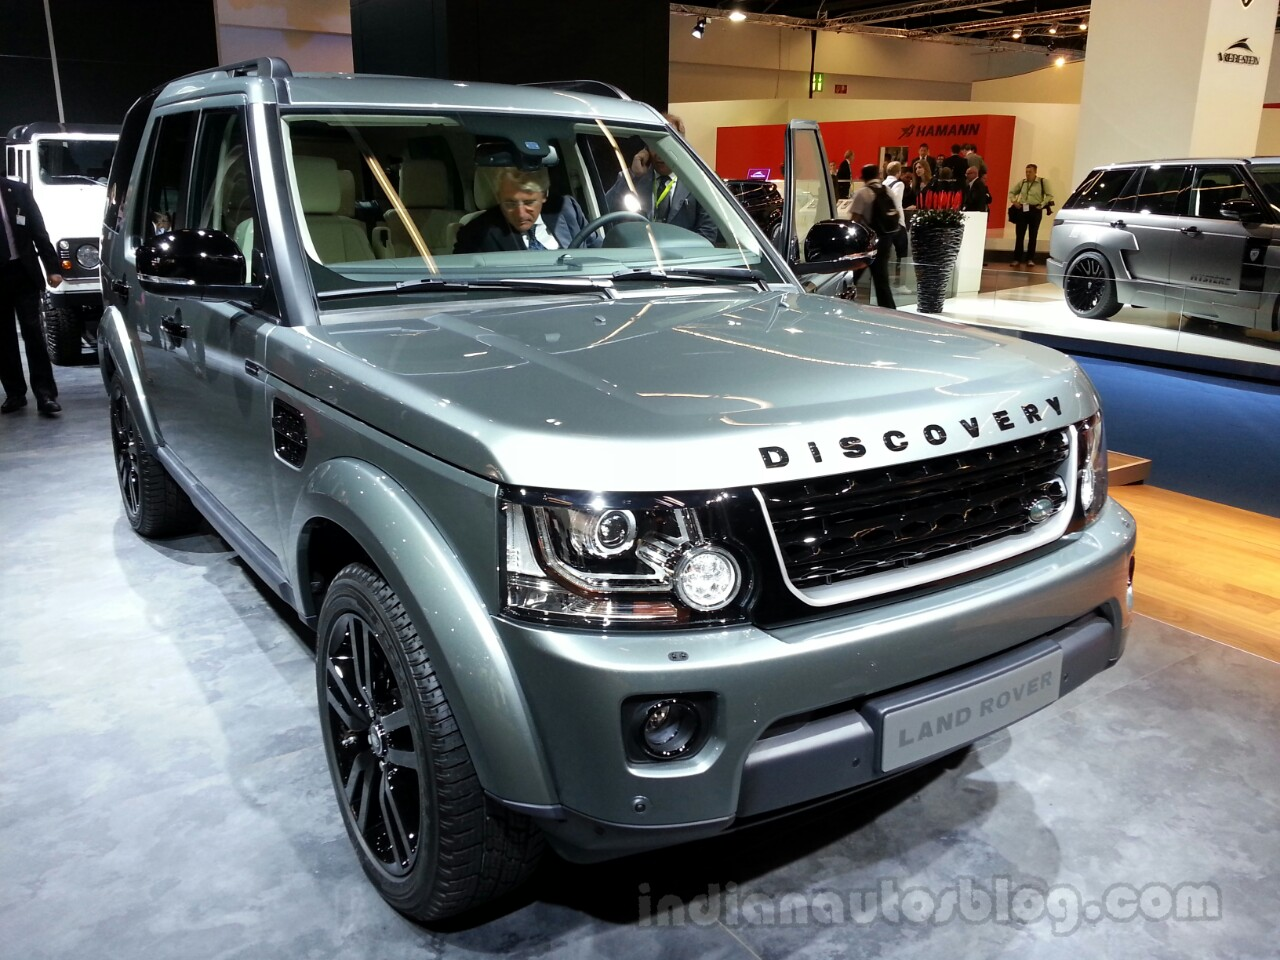 land rover discovery iii 2014 models - Auto-Database.com